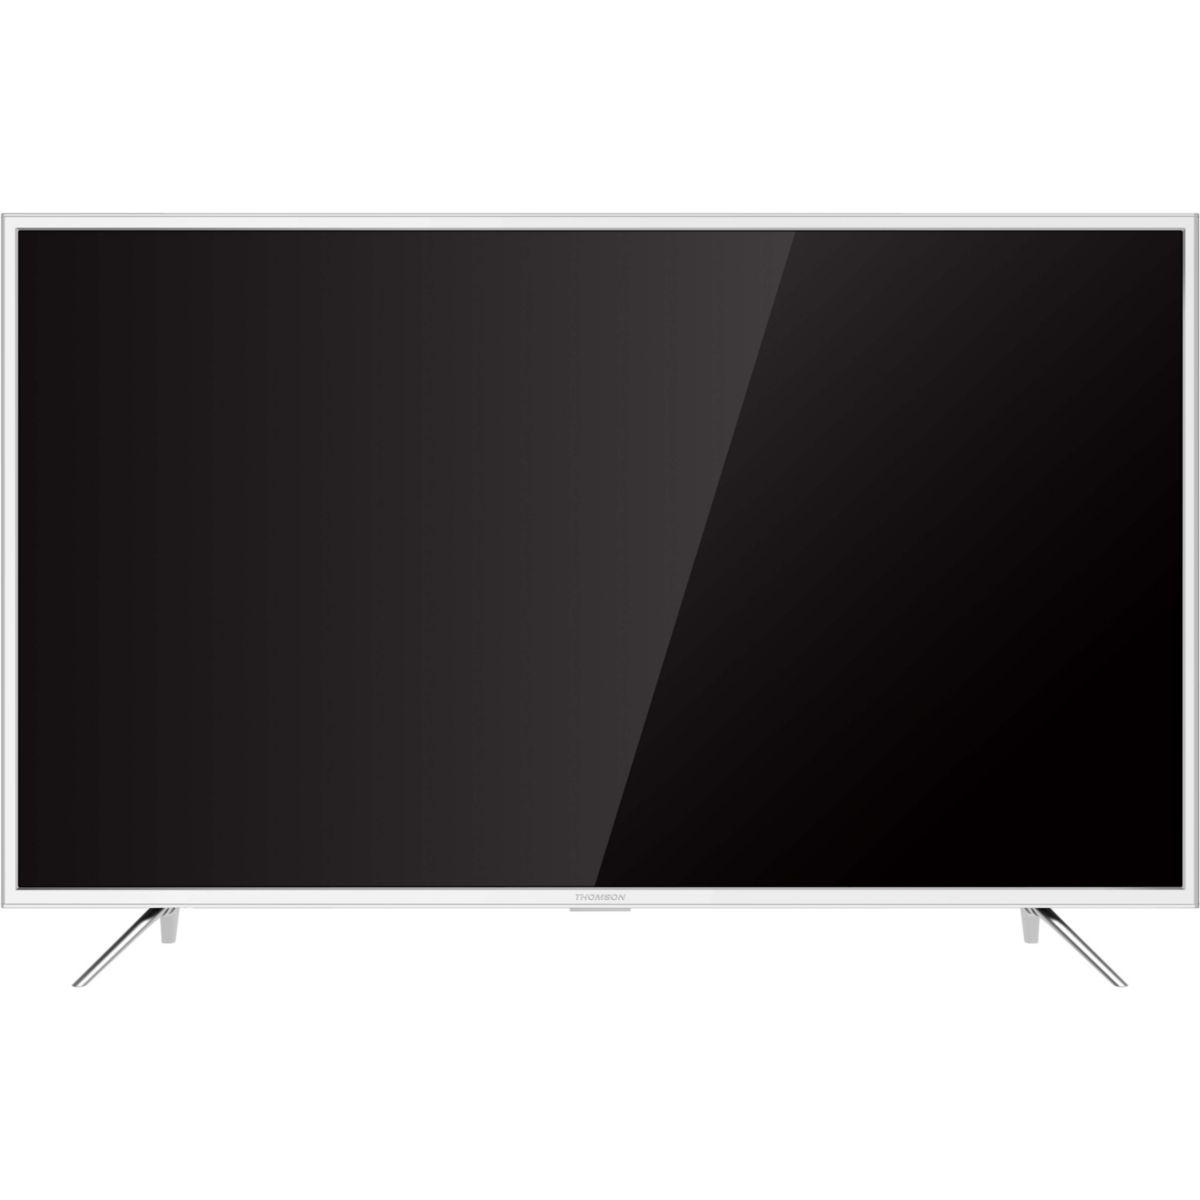 Tv thomson 43uc6416w